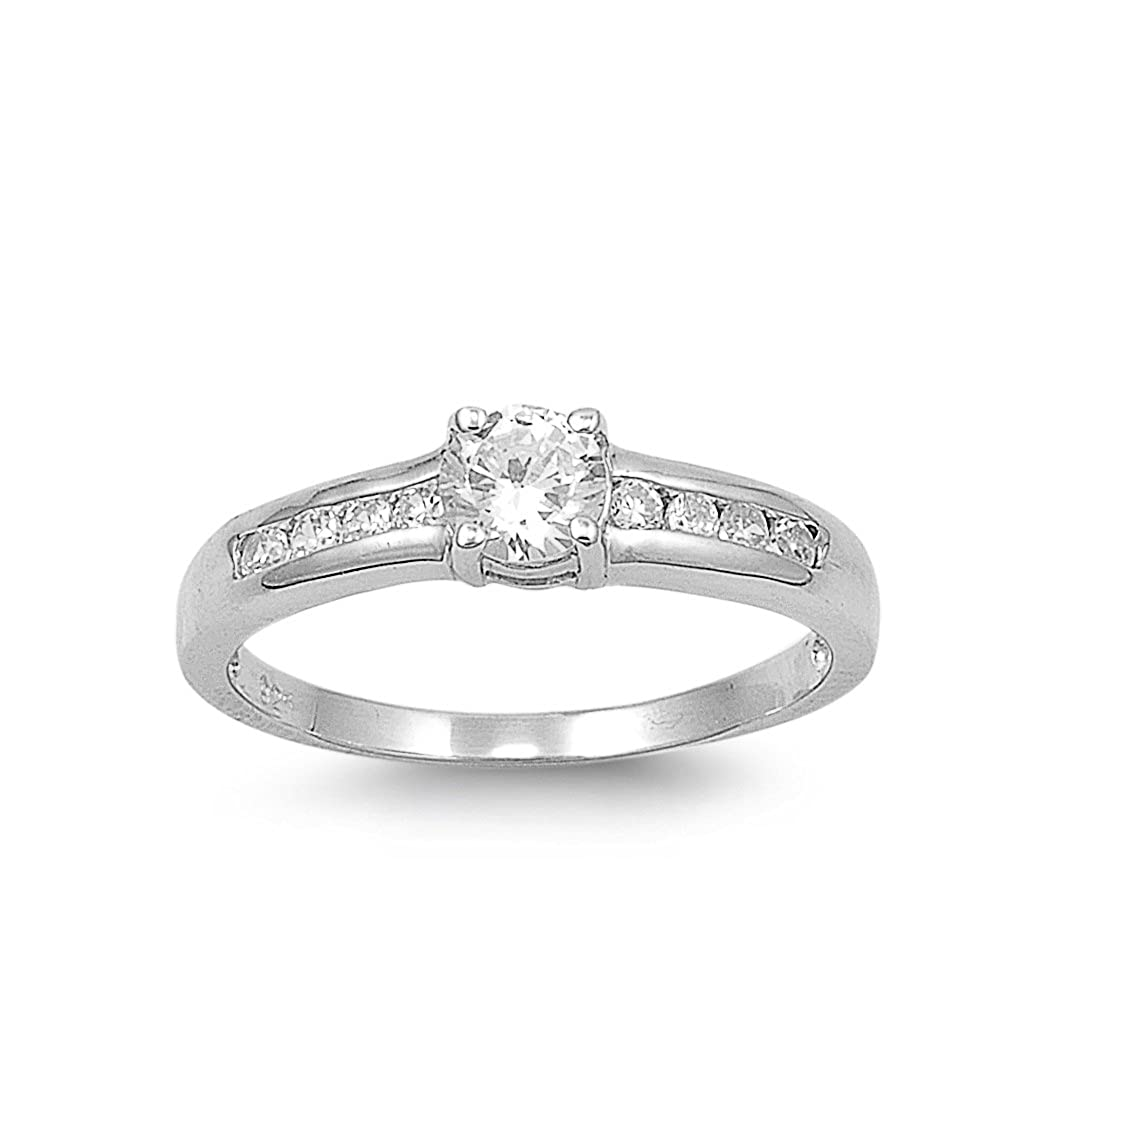 CloseoutWarehouse Round Center Cubic Zirconia Ring Sterling Silver 925